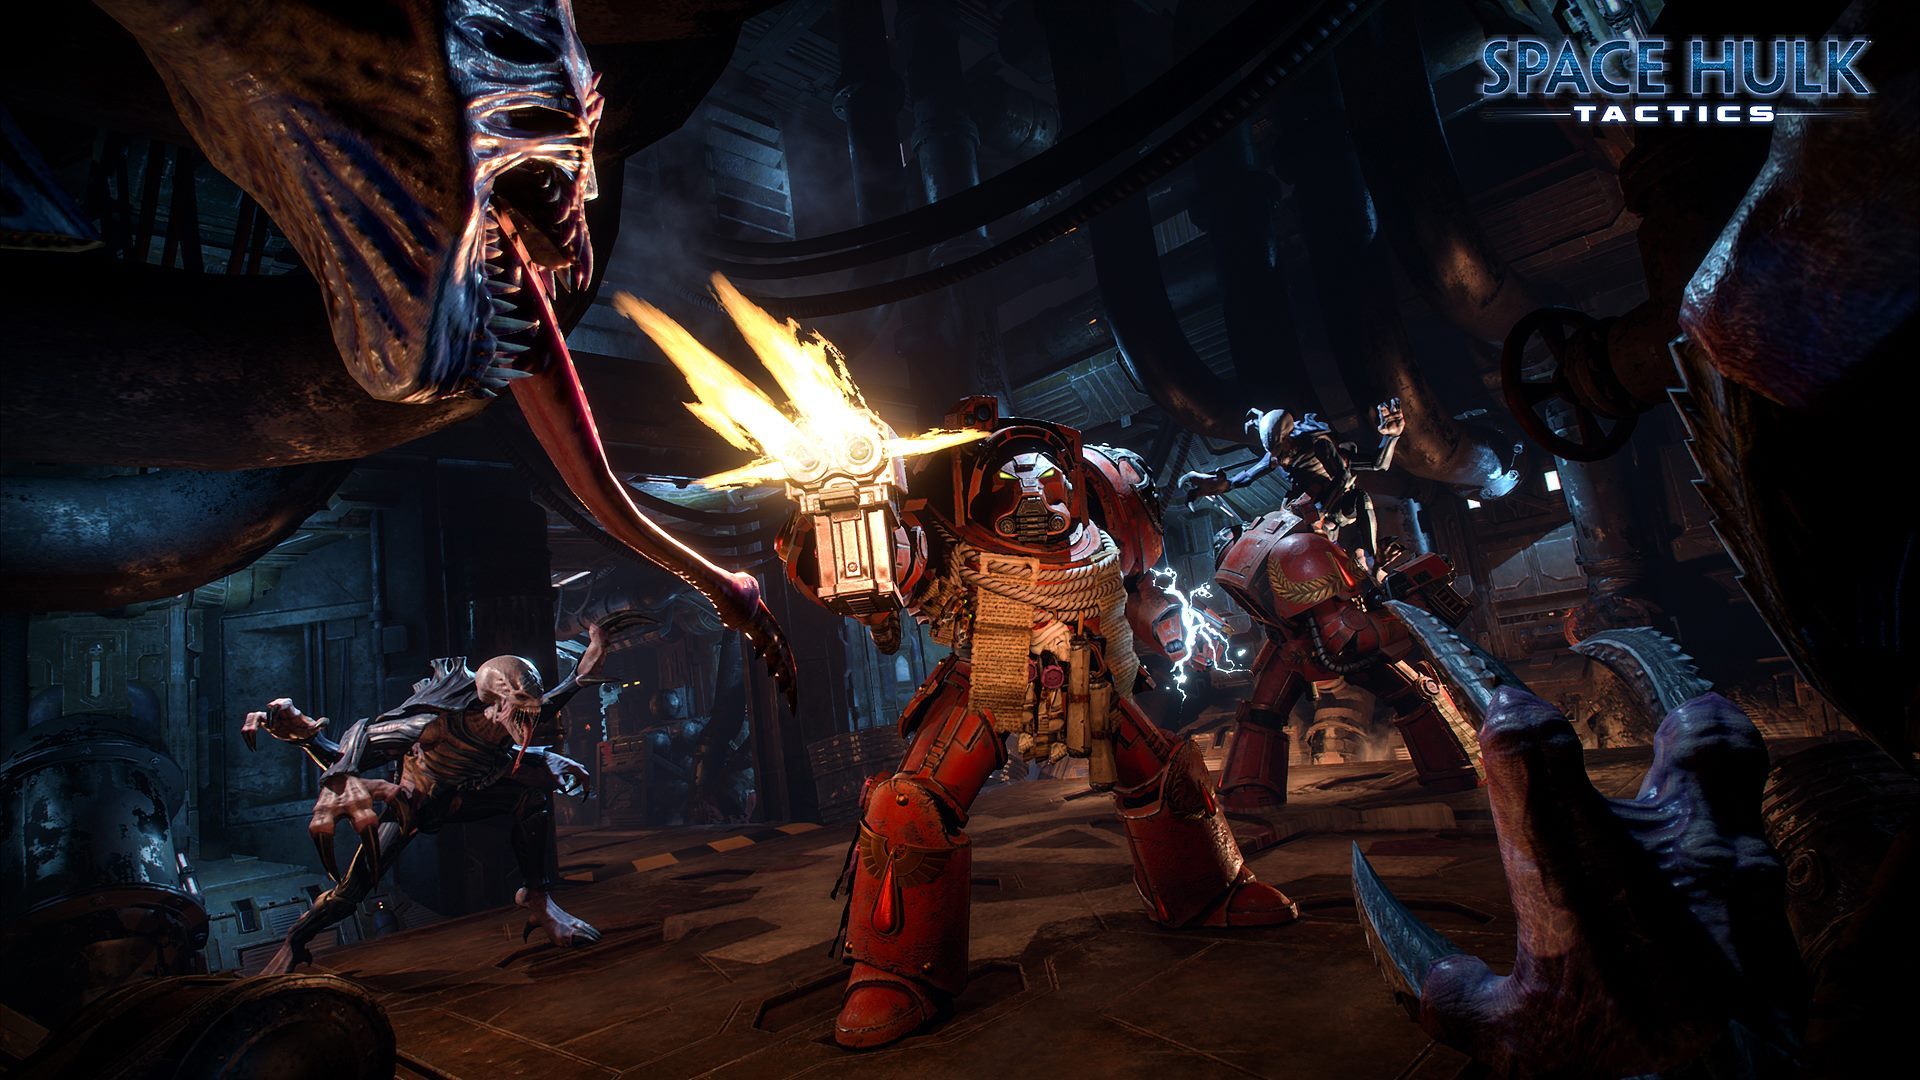 Spacehulk tactics Screenshot